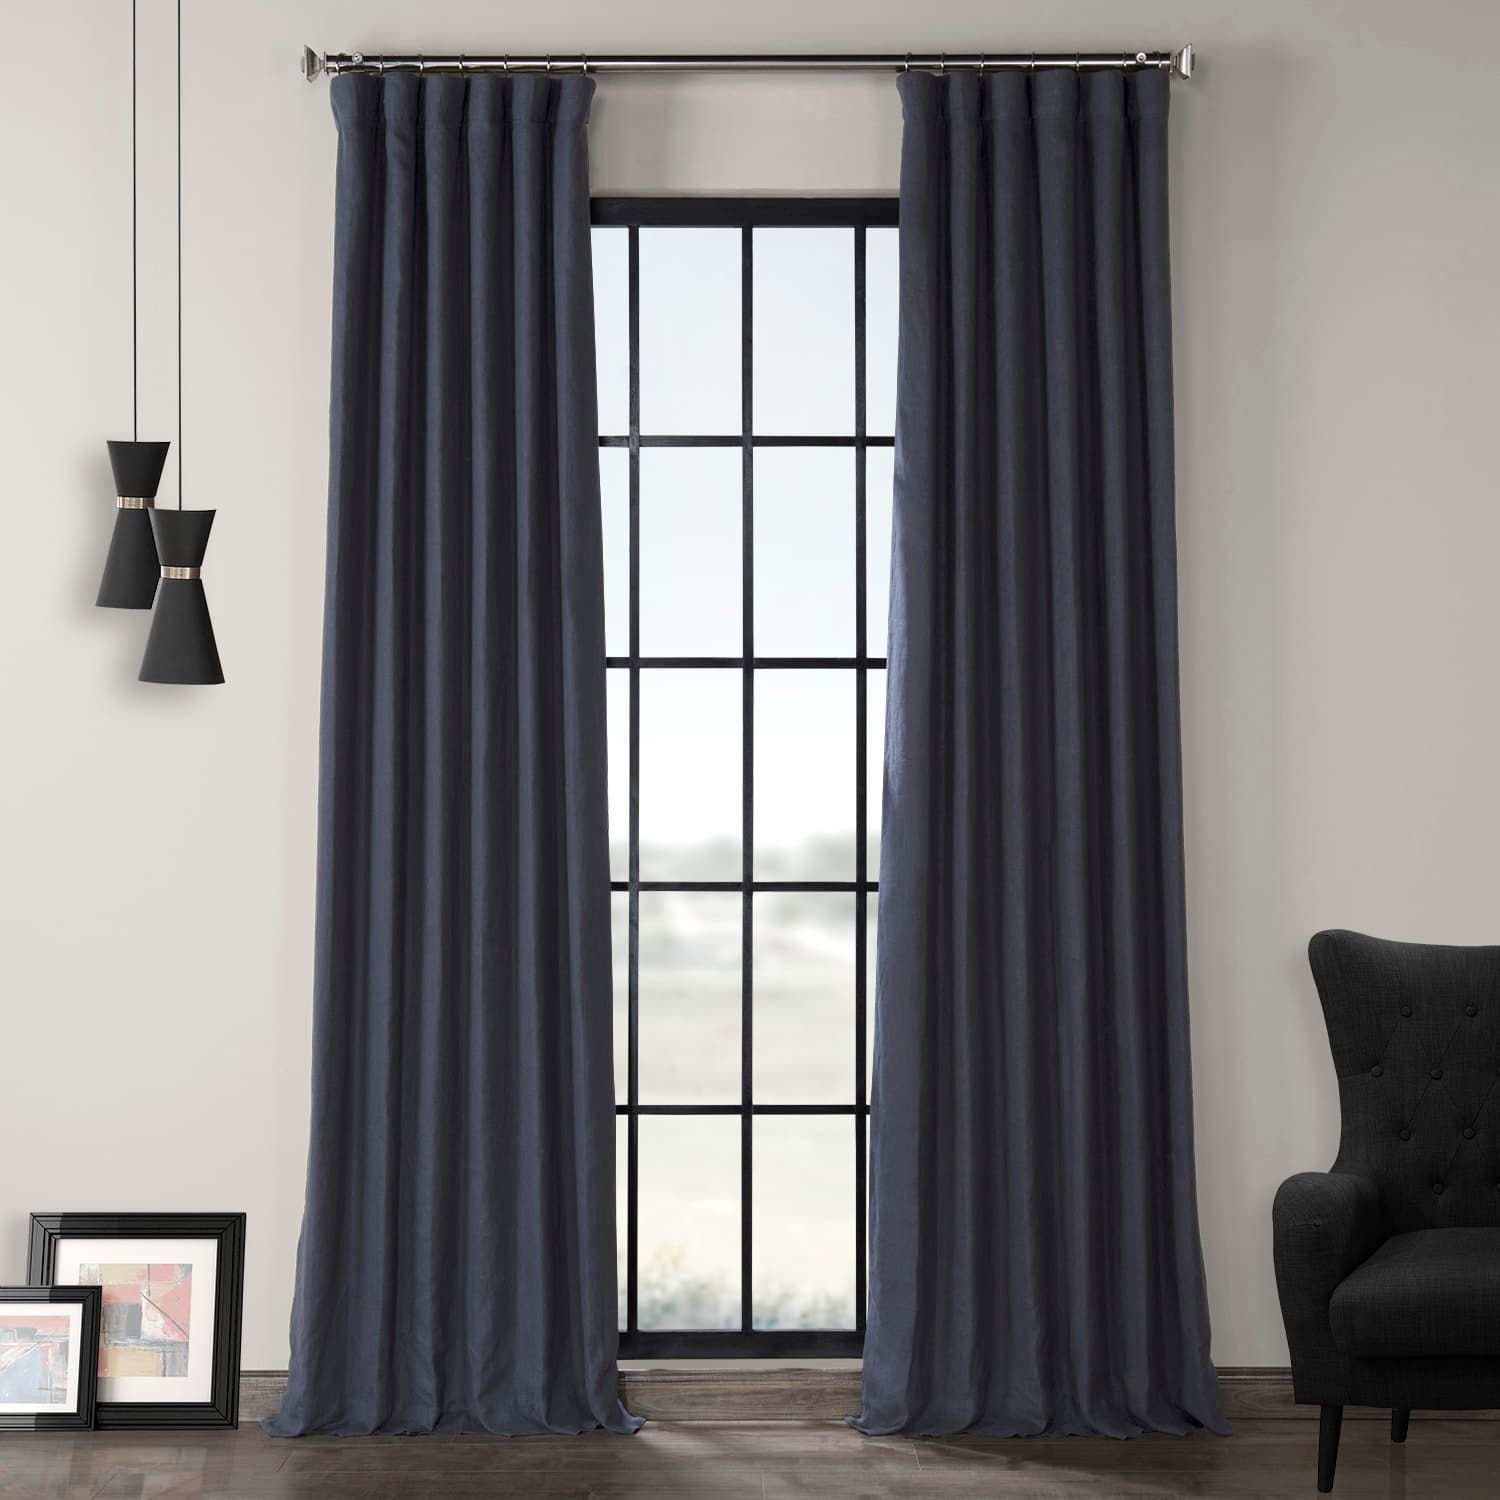 True Navy French Linen Curtain Linen Curtains Blue Blackout Curtains Panel Curtains